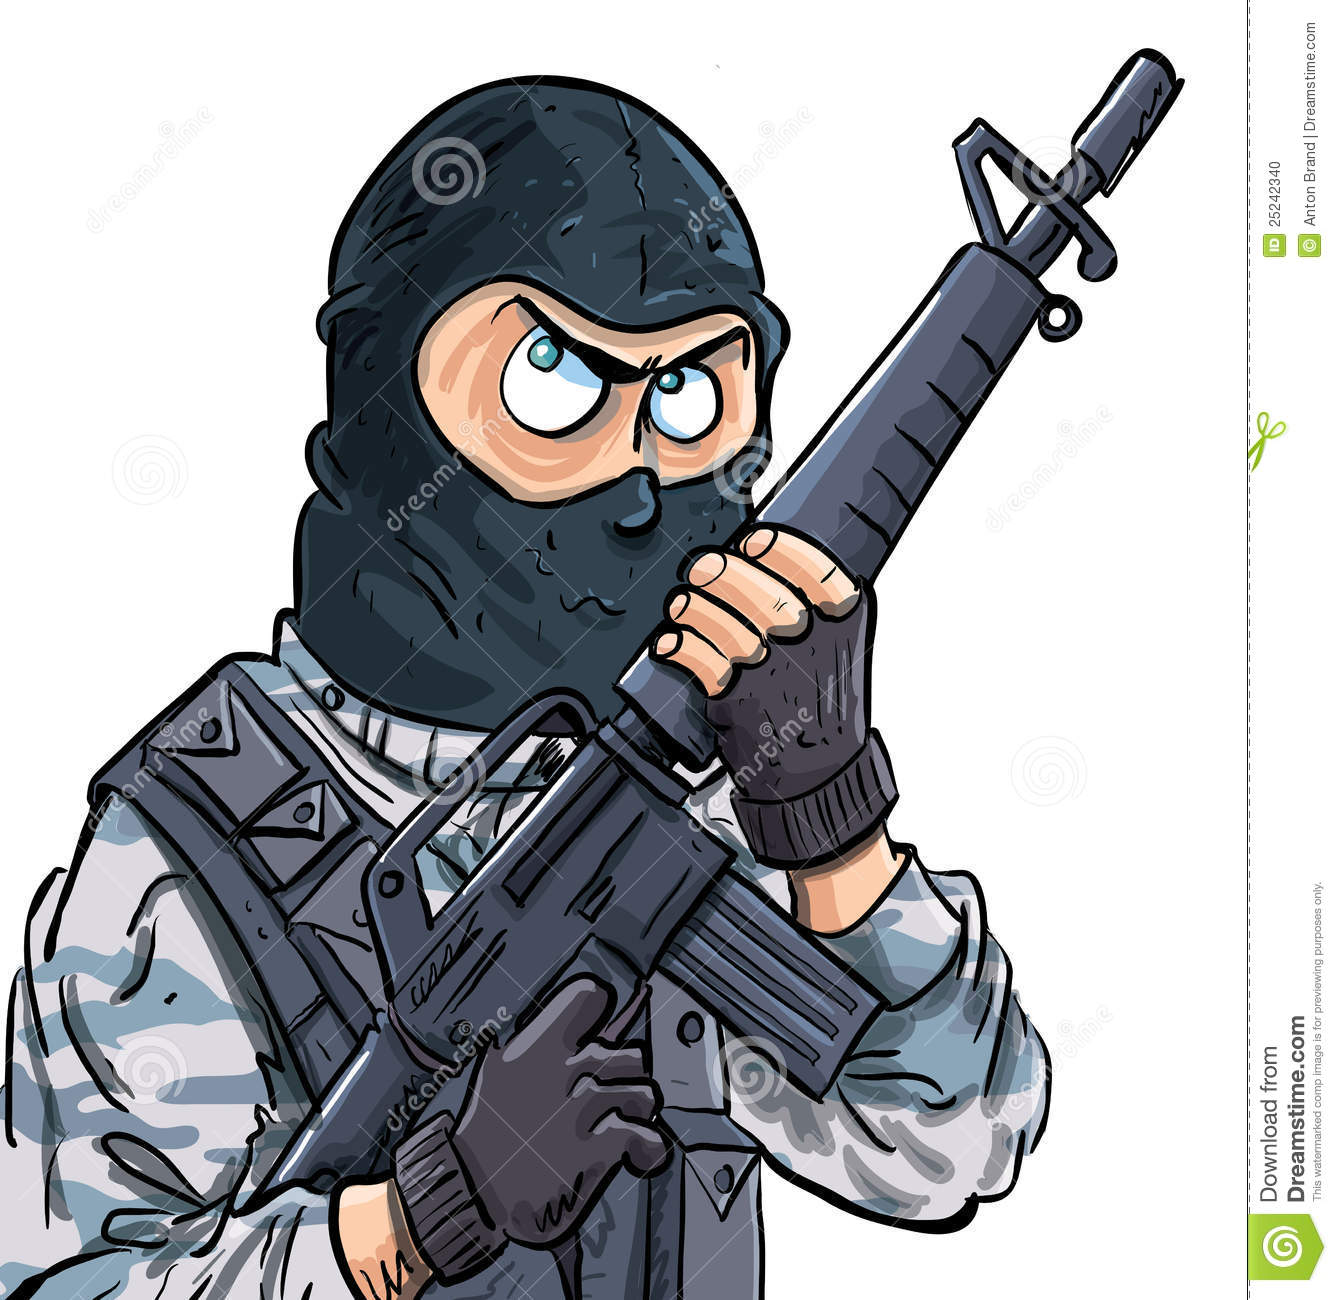 Swat Stock Illustrations.